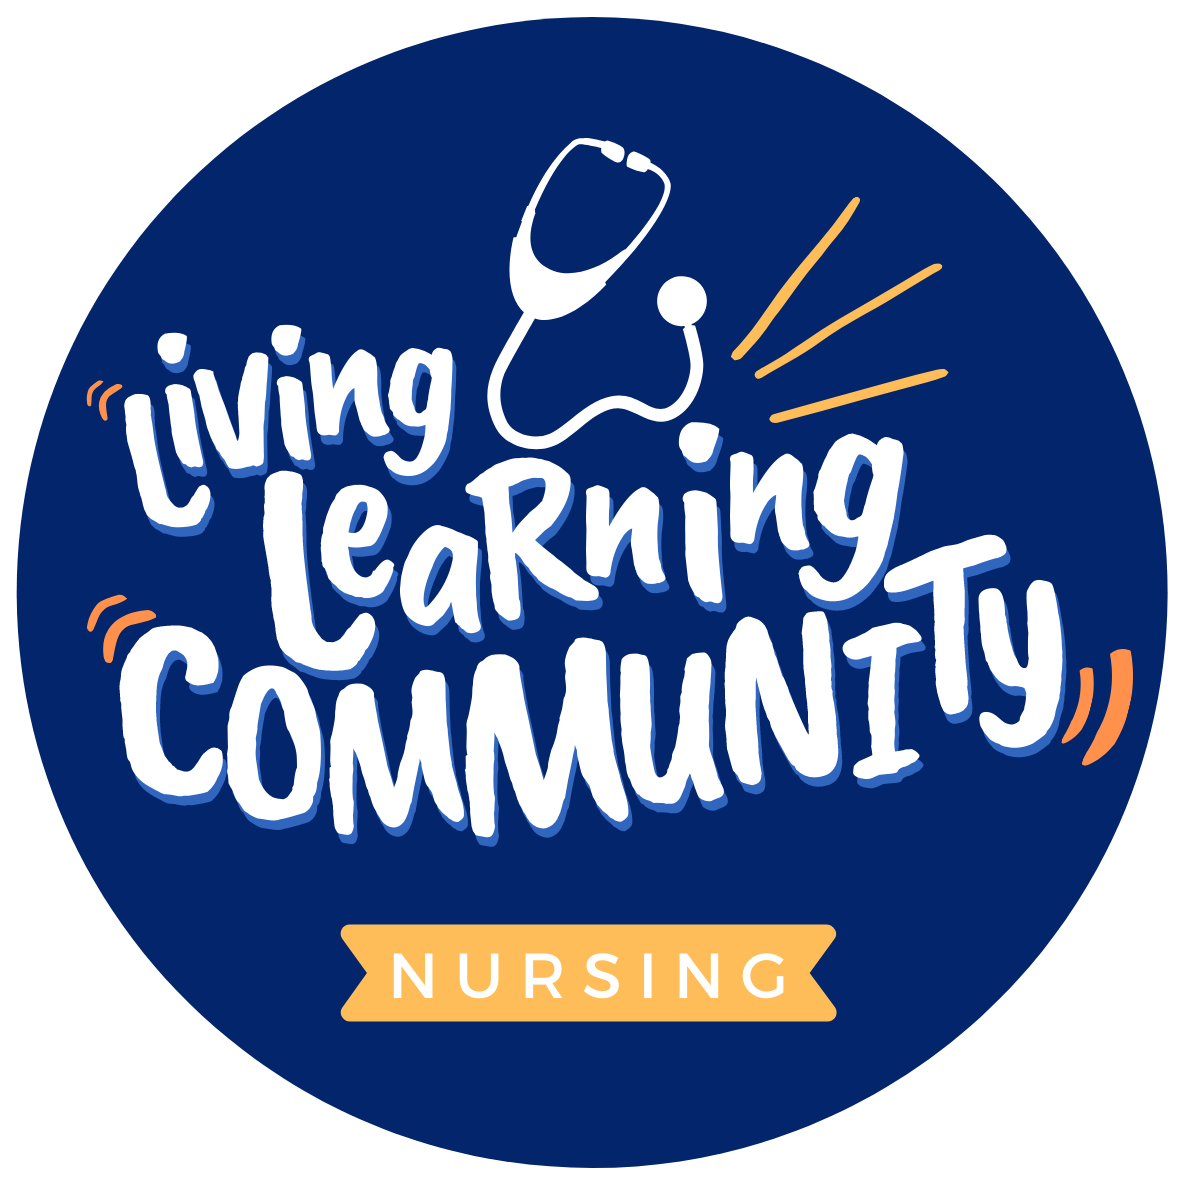 Nursing LLC Sticker